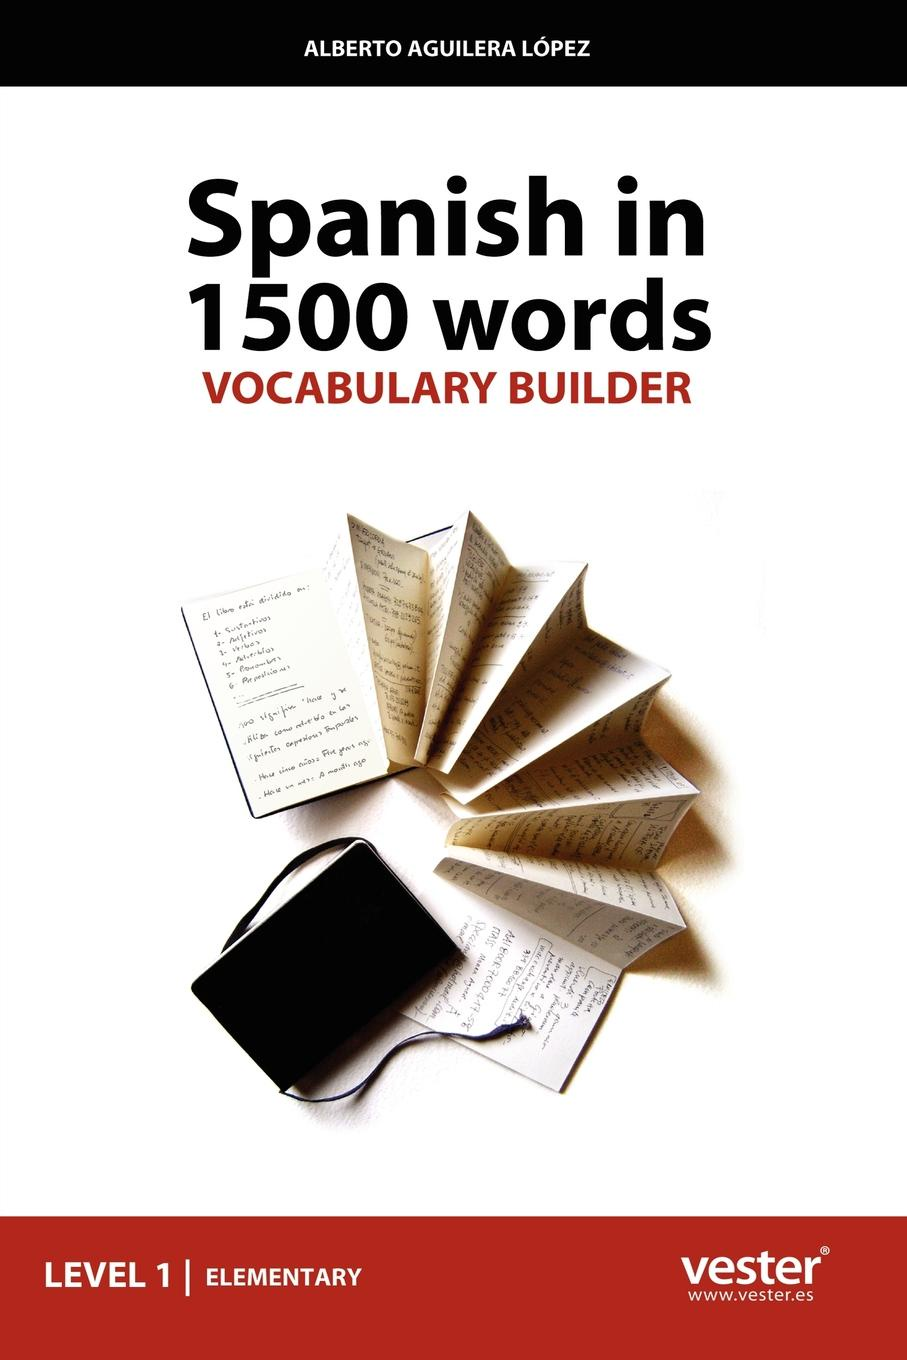 Alberto Aguilera Lopez Spanish in 1500 Words, Vocabulary Builder